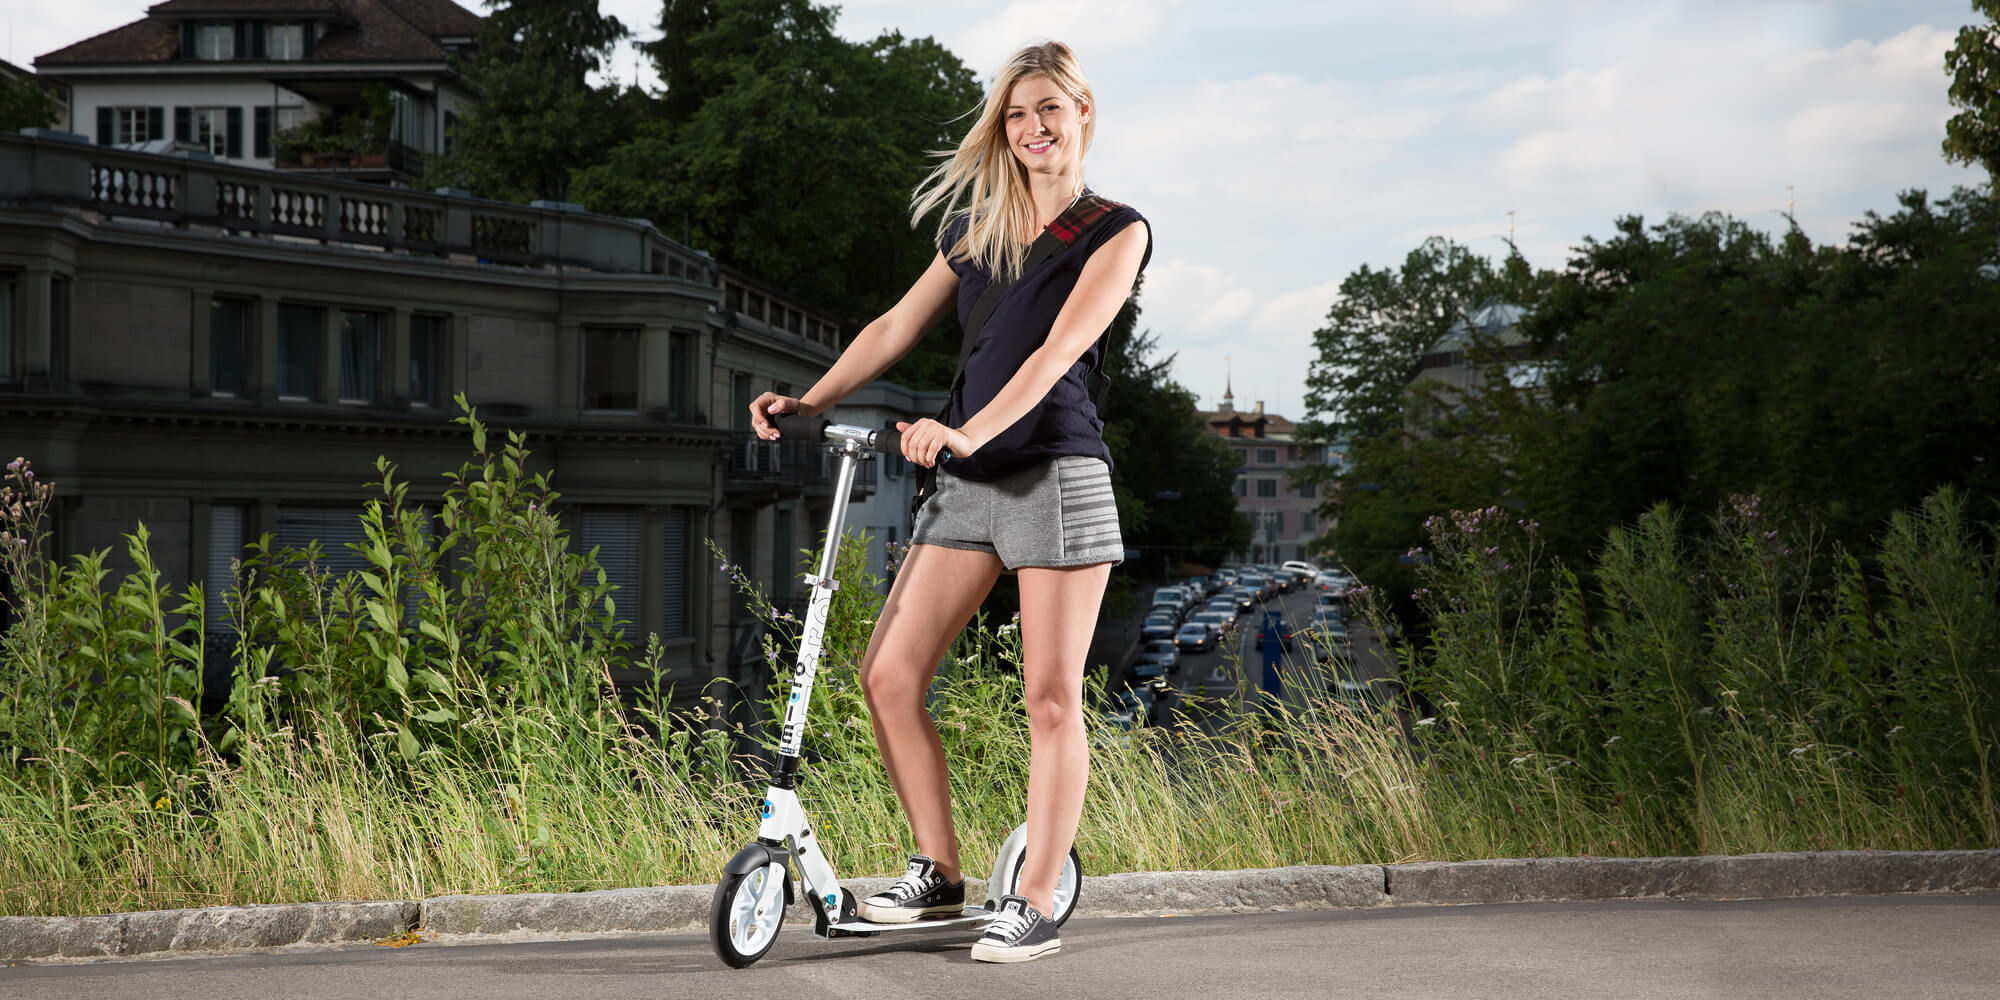 Micro white kick scooter with adult female rider